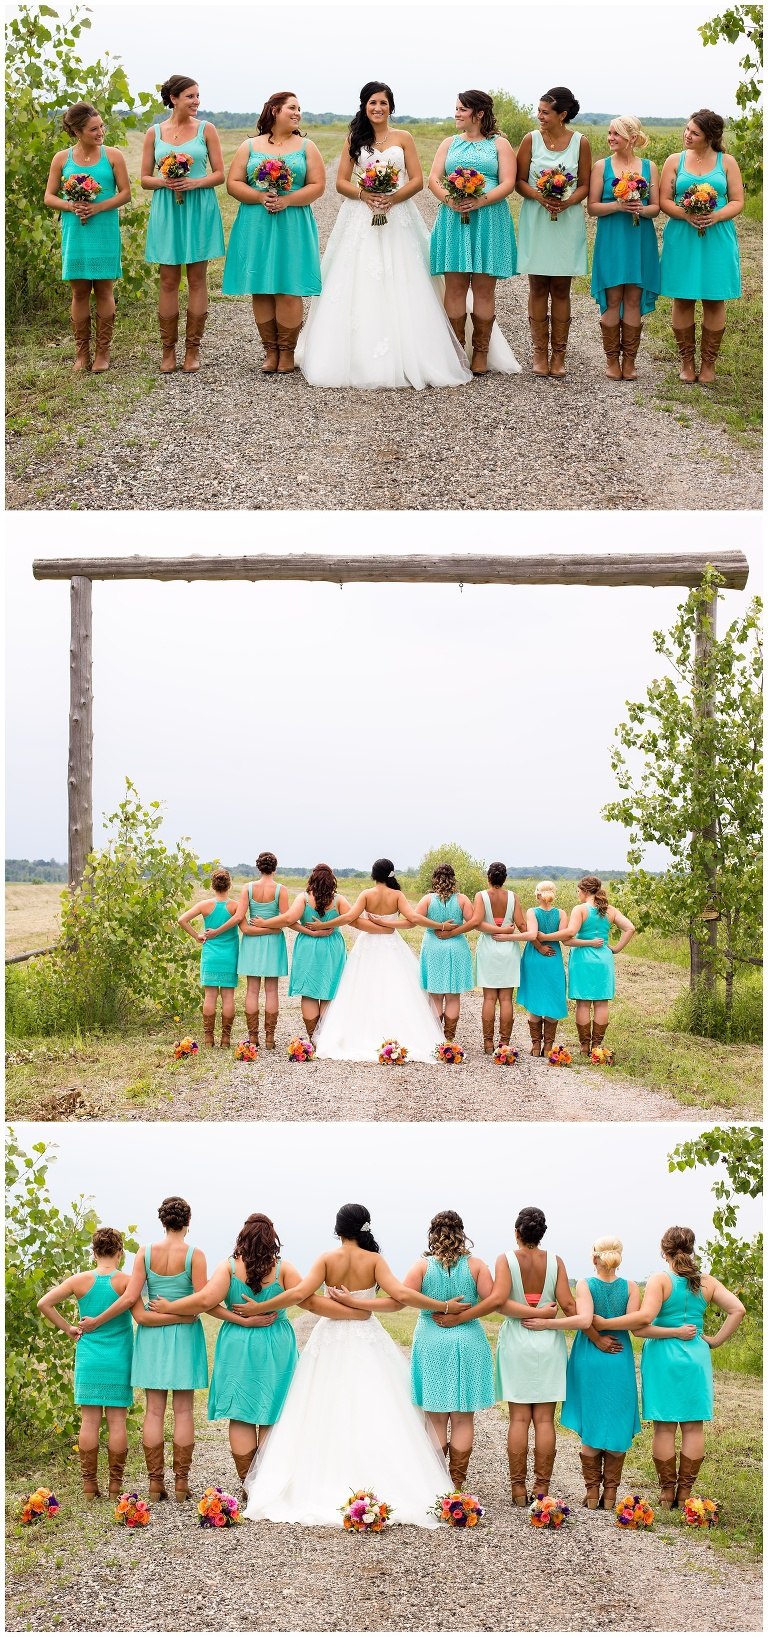 Mr. & Mrs. Graebner Part 2. | Coral, Turquoise, and Cowboy Boots ...